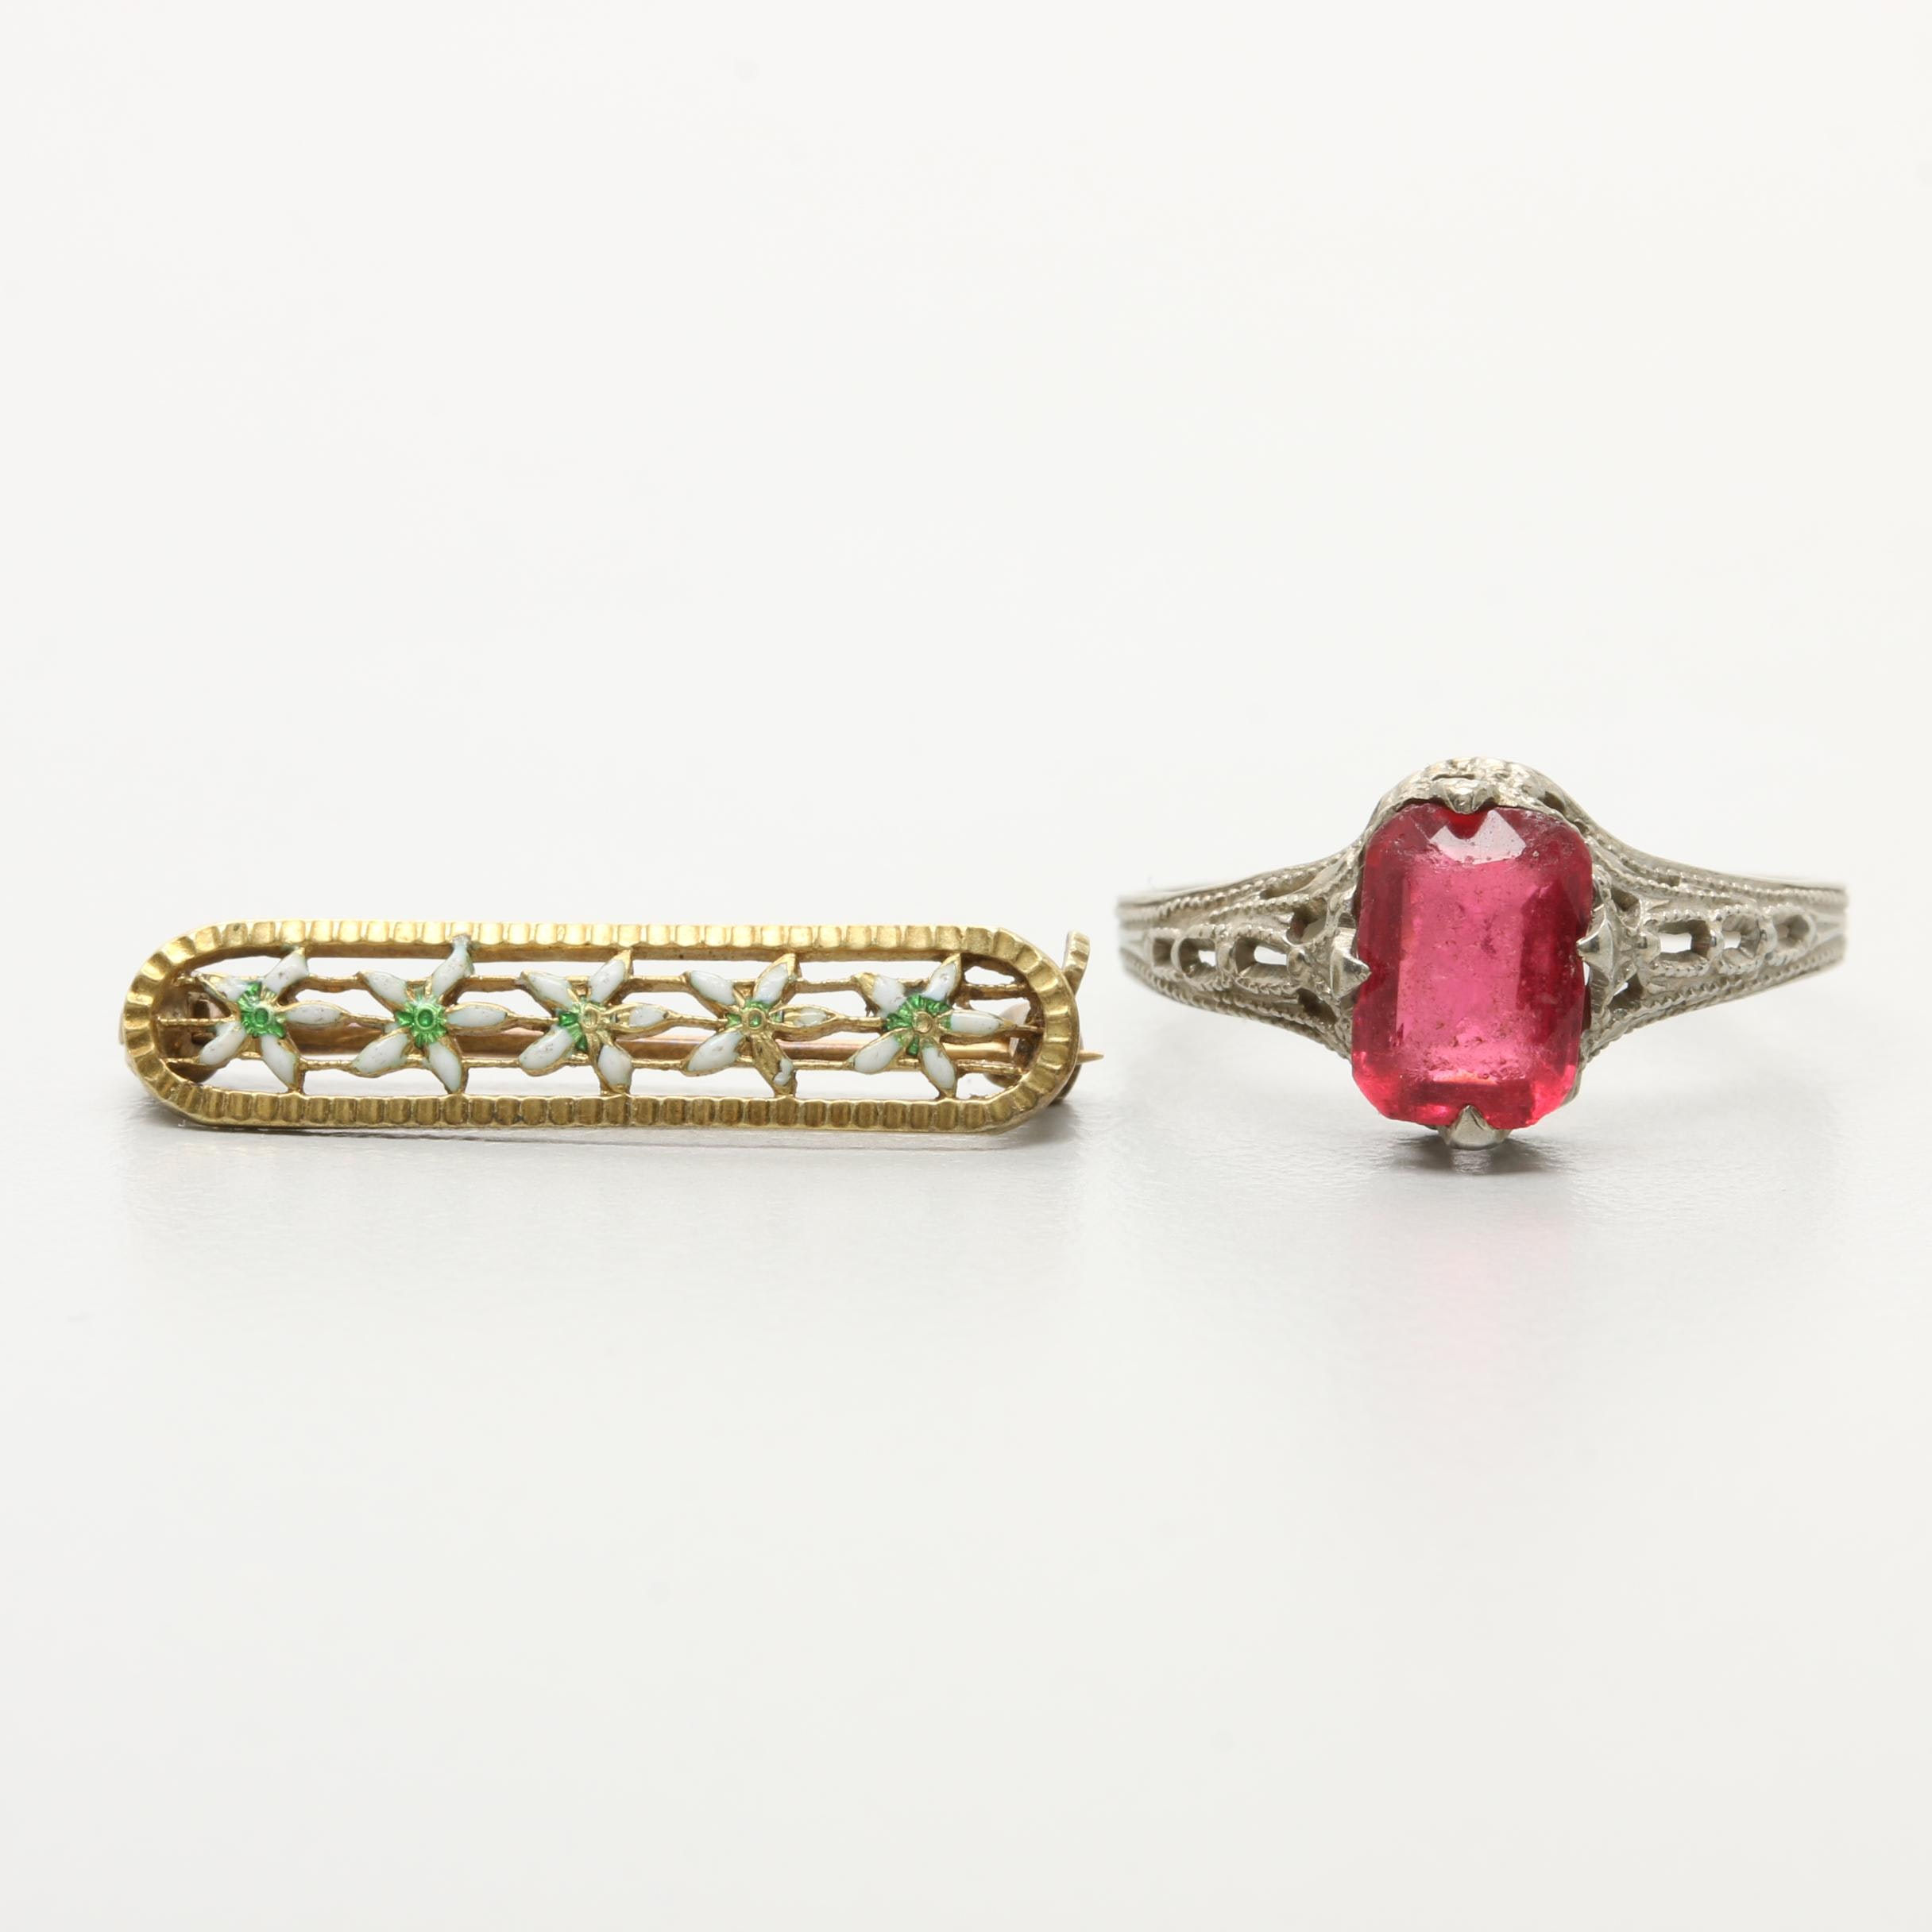 10K White Gold Glass Ring and 14K Yellow Gold Enamel Brooch